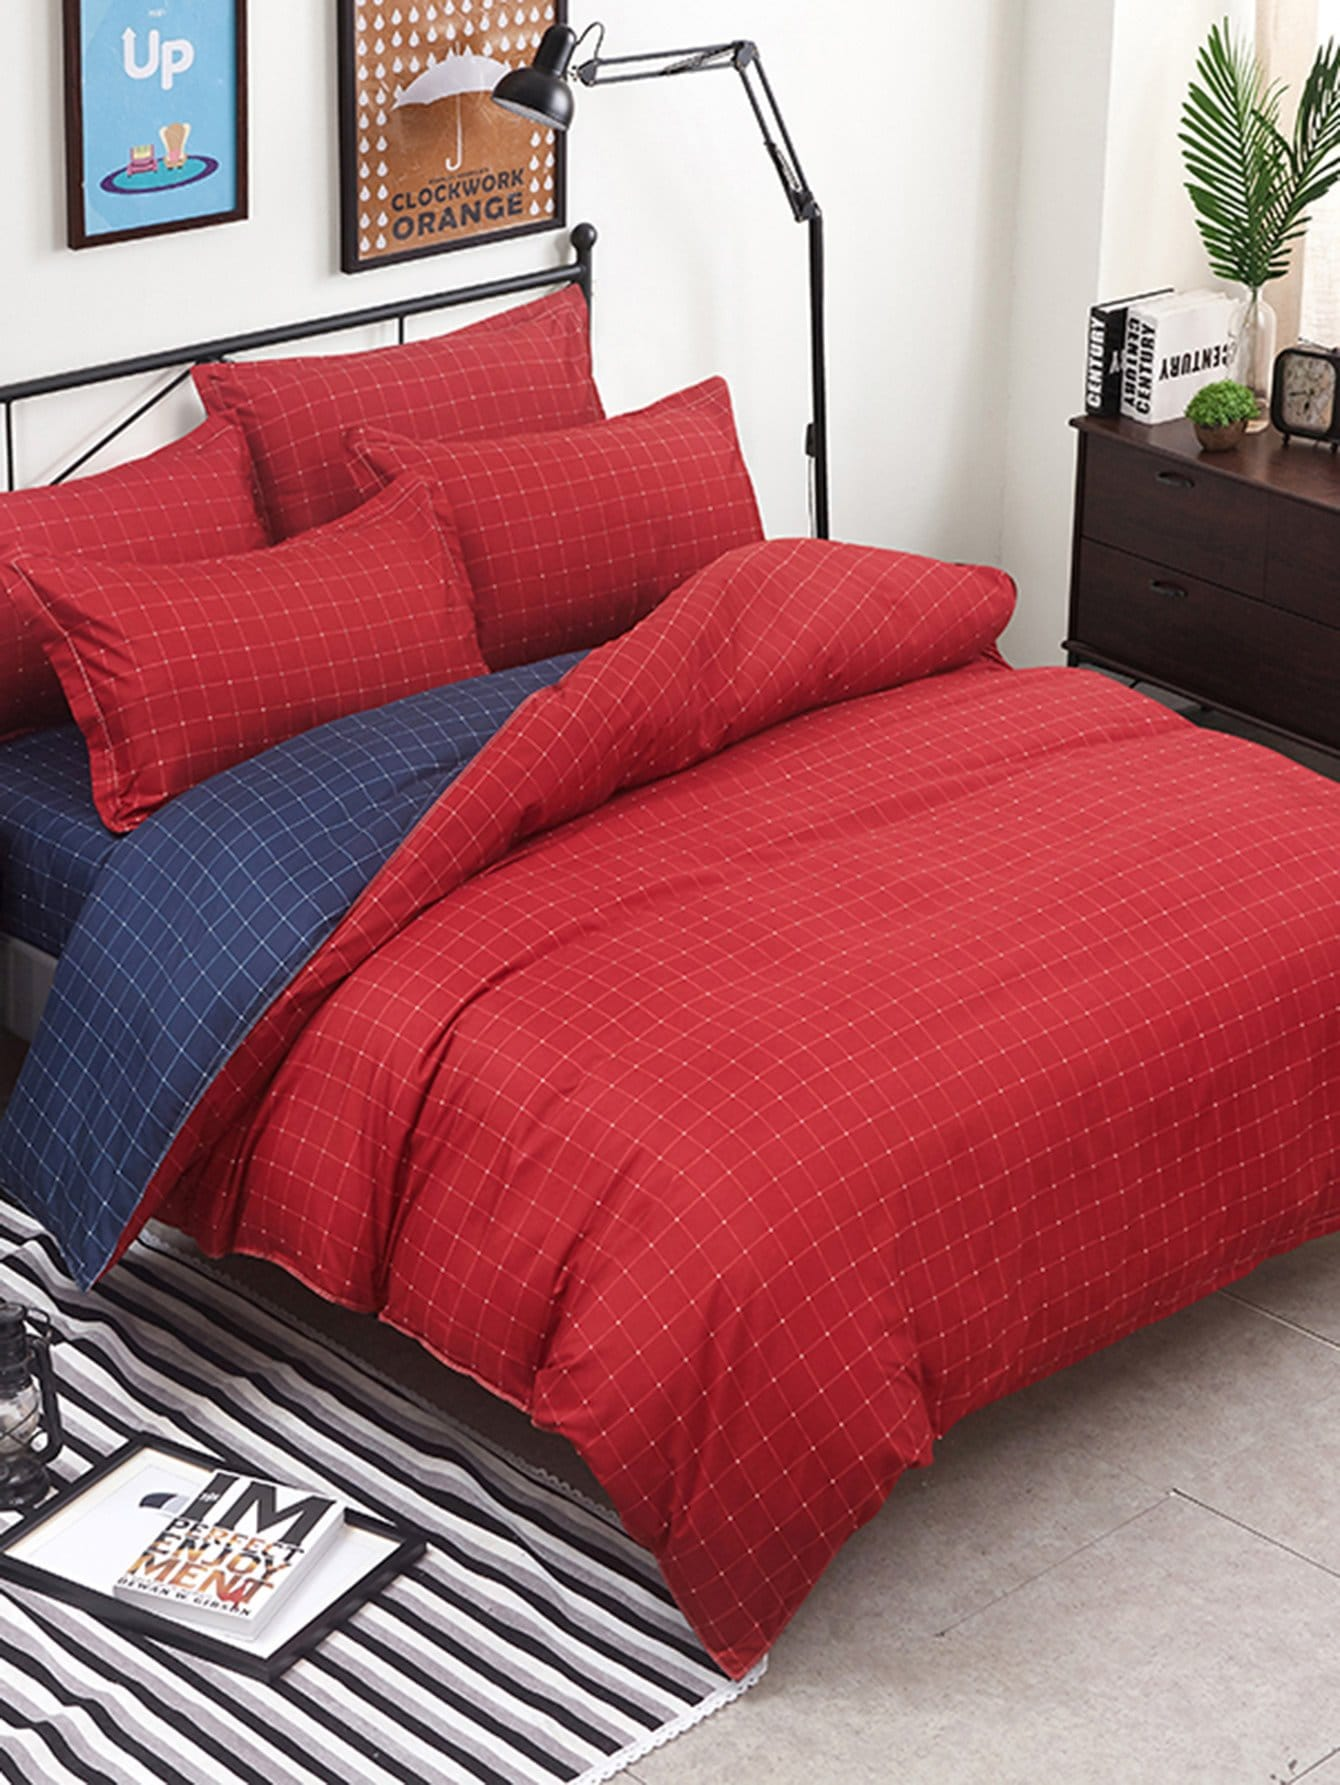 Two Tone Grid Bedding Set two tone drop shoulder sweatshirt